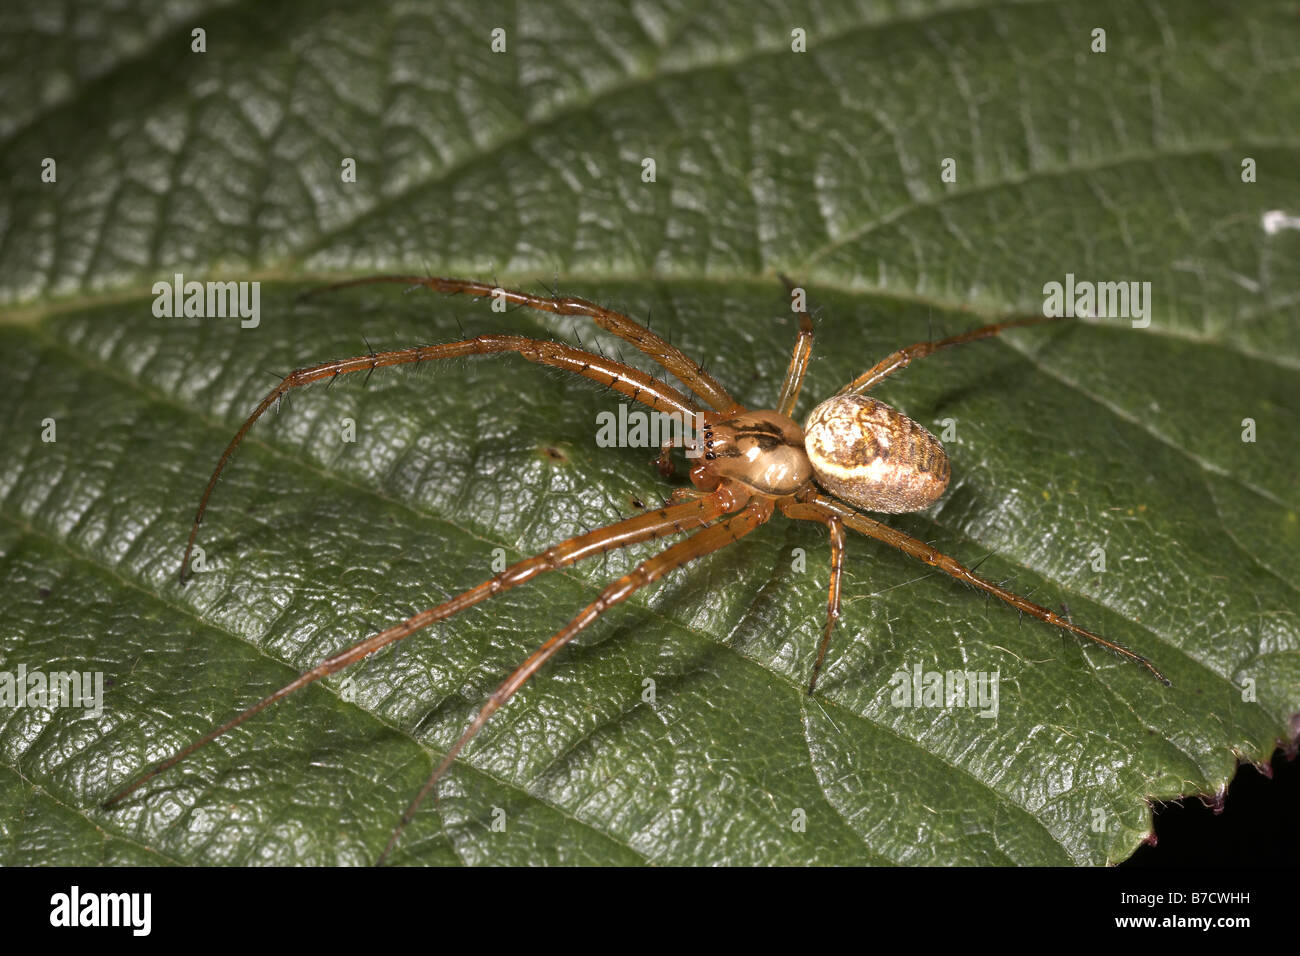 Spider at North Cliffe Woods Yorksahire Wildlife Trust Nature Reserve East Yorkshire UK - Stock Image